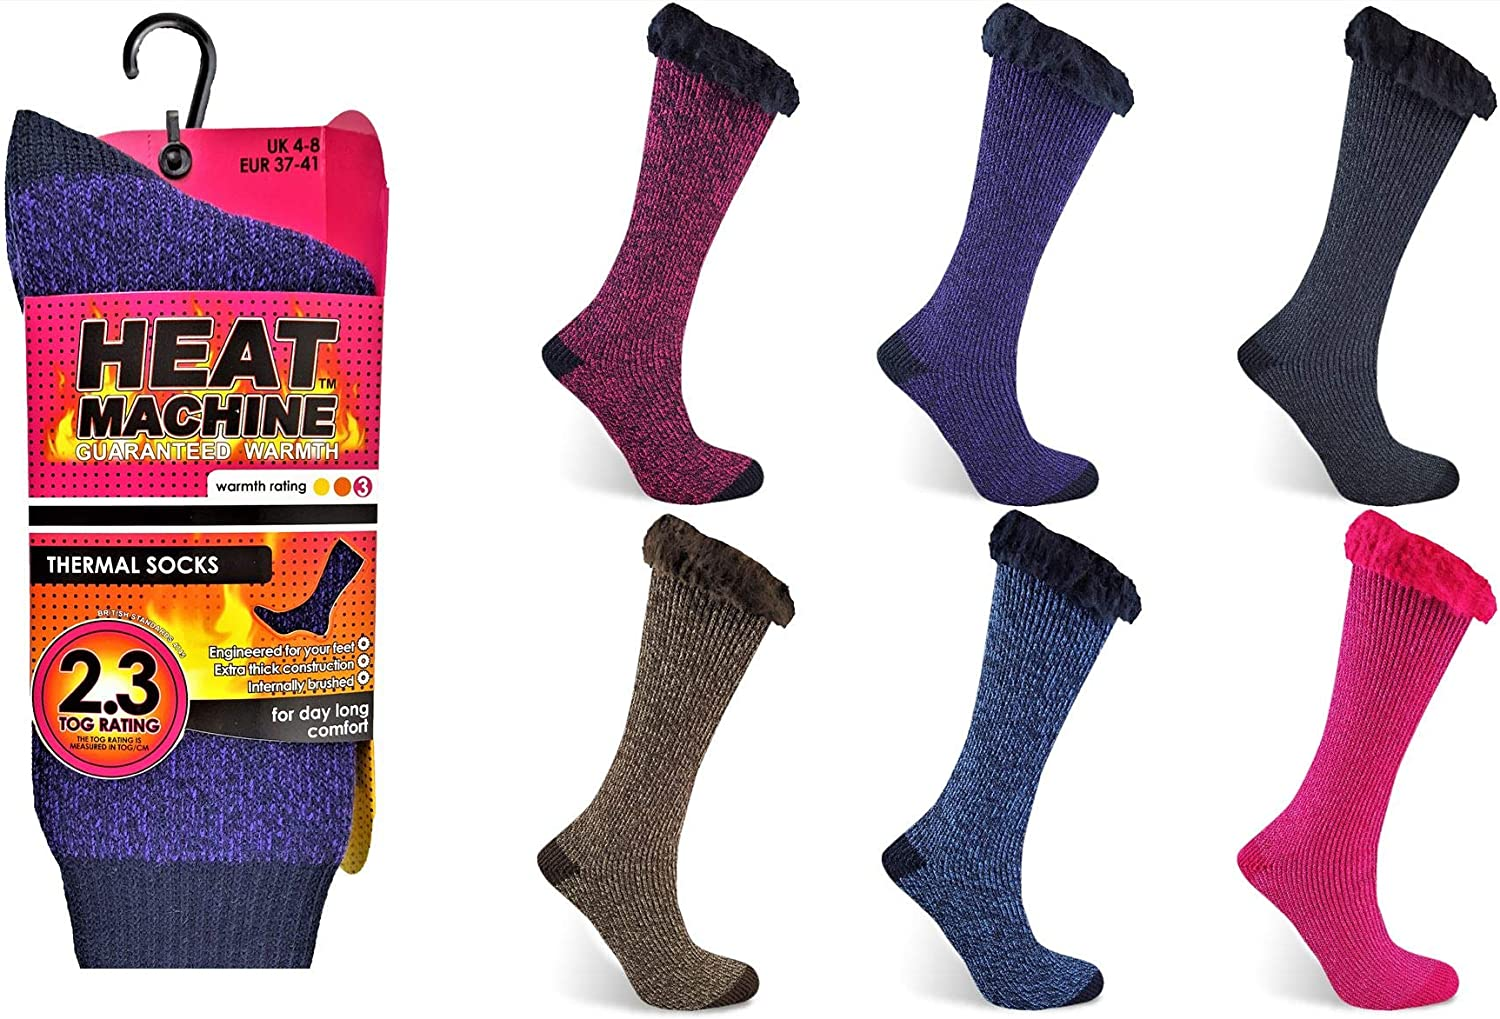 Ladies Thermal Insulated Socks 2.3 Tog Rated Internally Brushed by Heat Machine